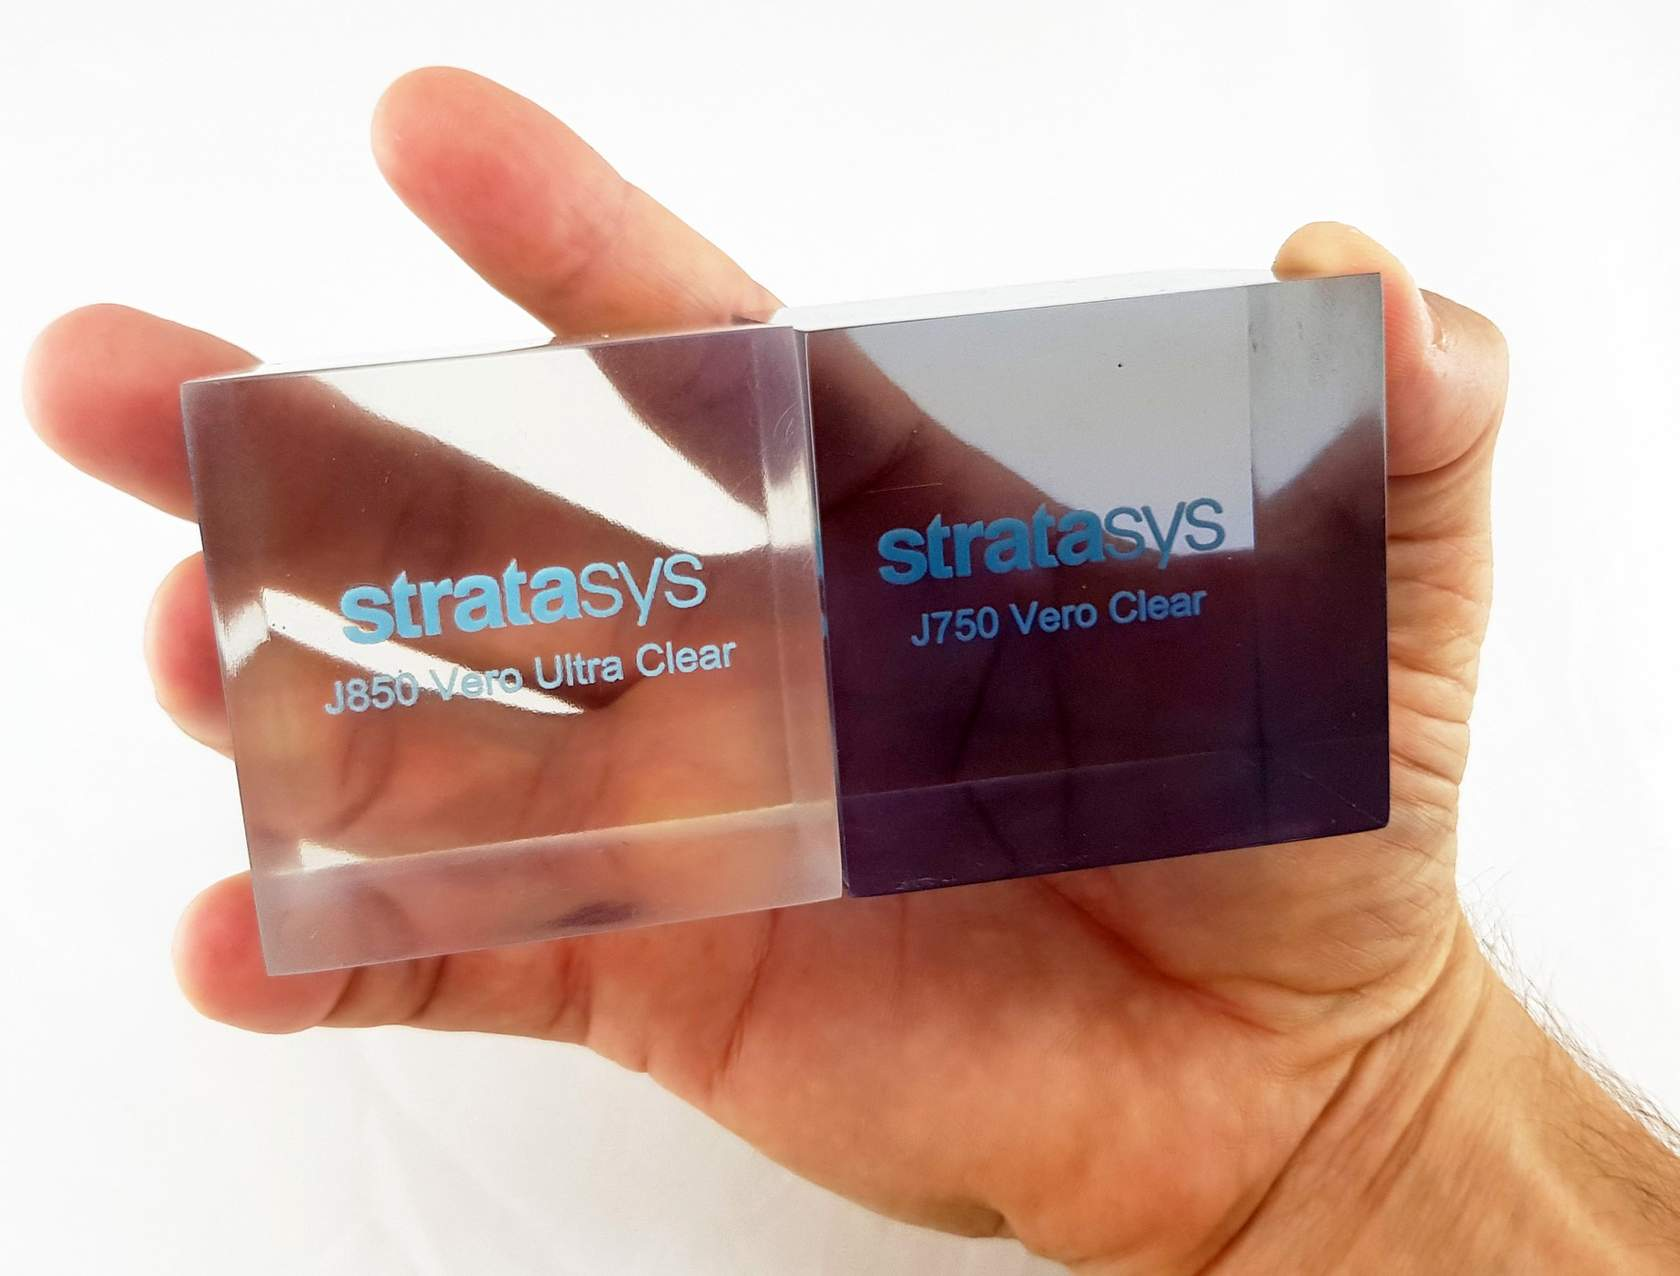 stratasys material j850 vero ultra clear